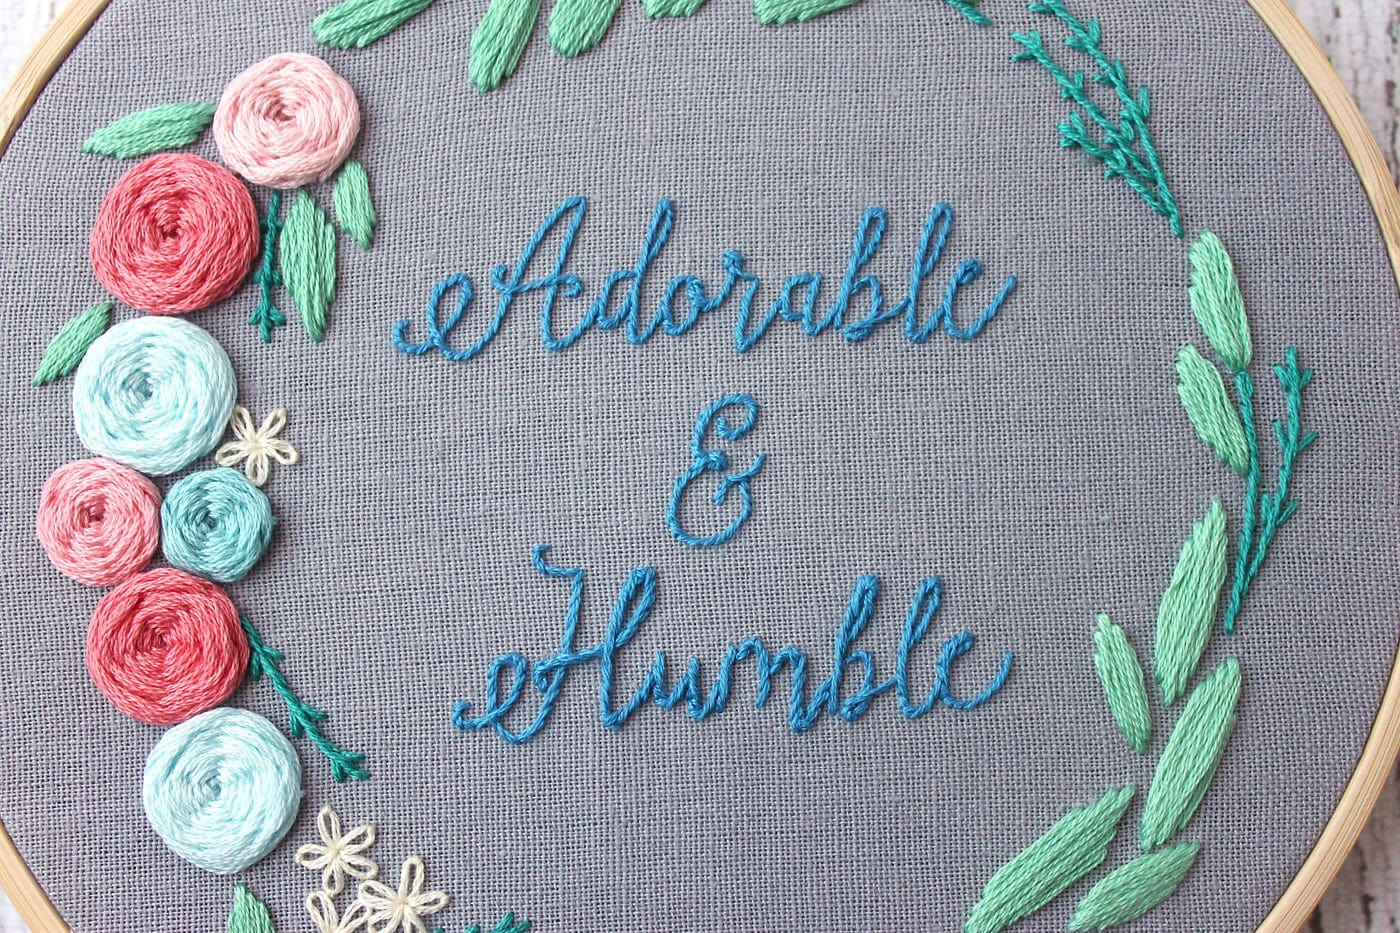 Adorable and Humble Free Floral Wreath Hand Embroidery